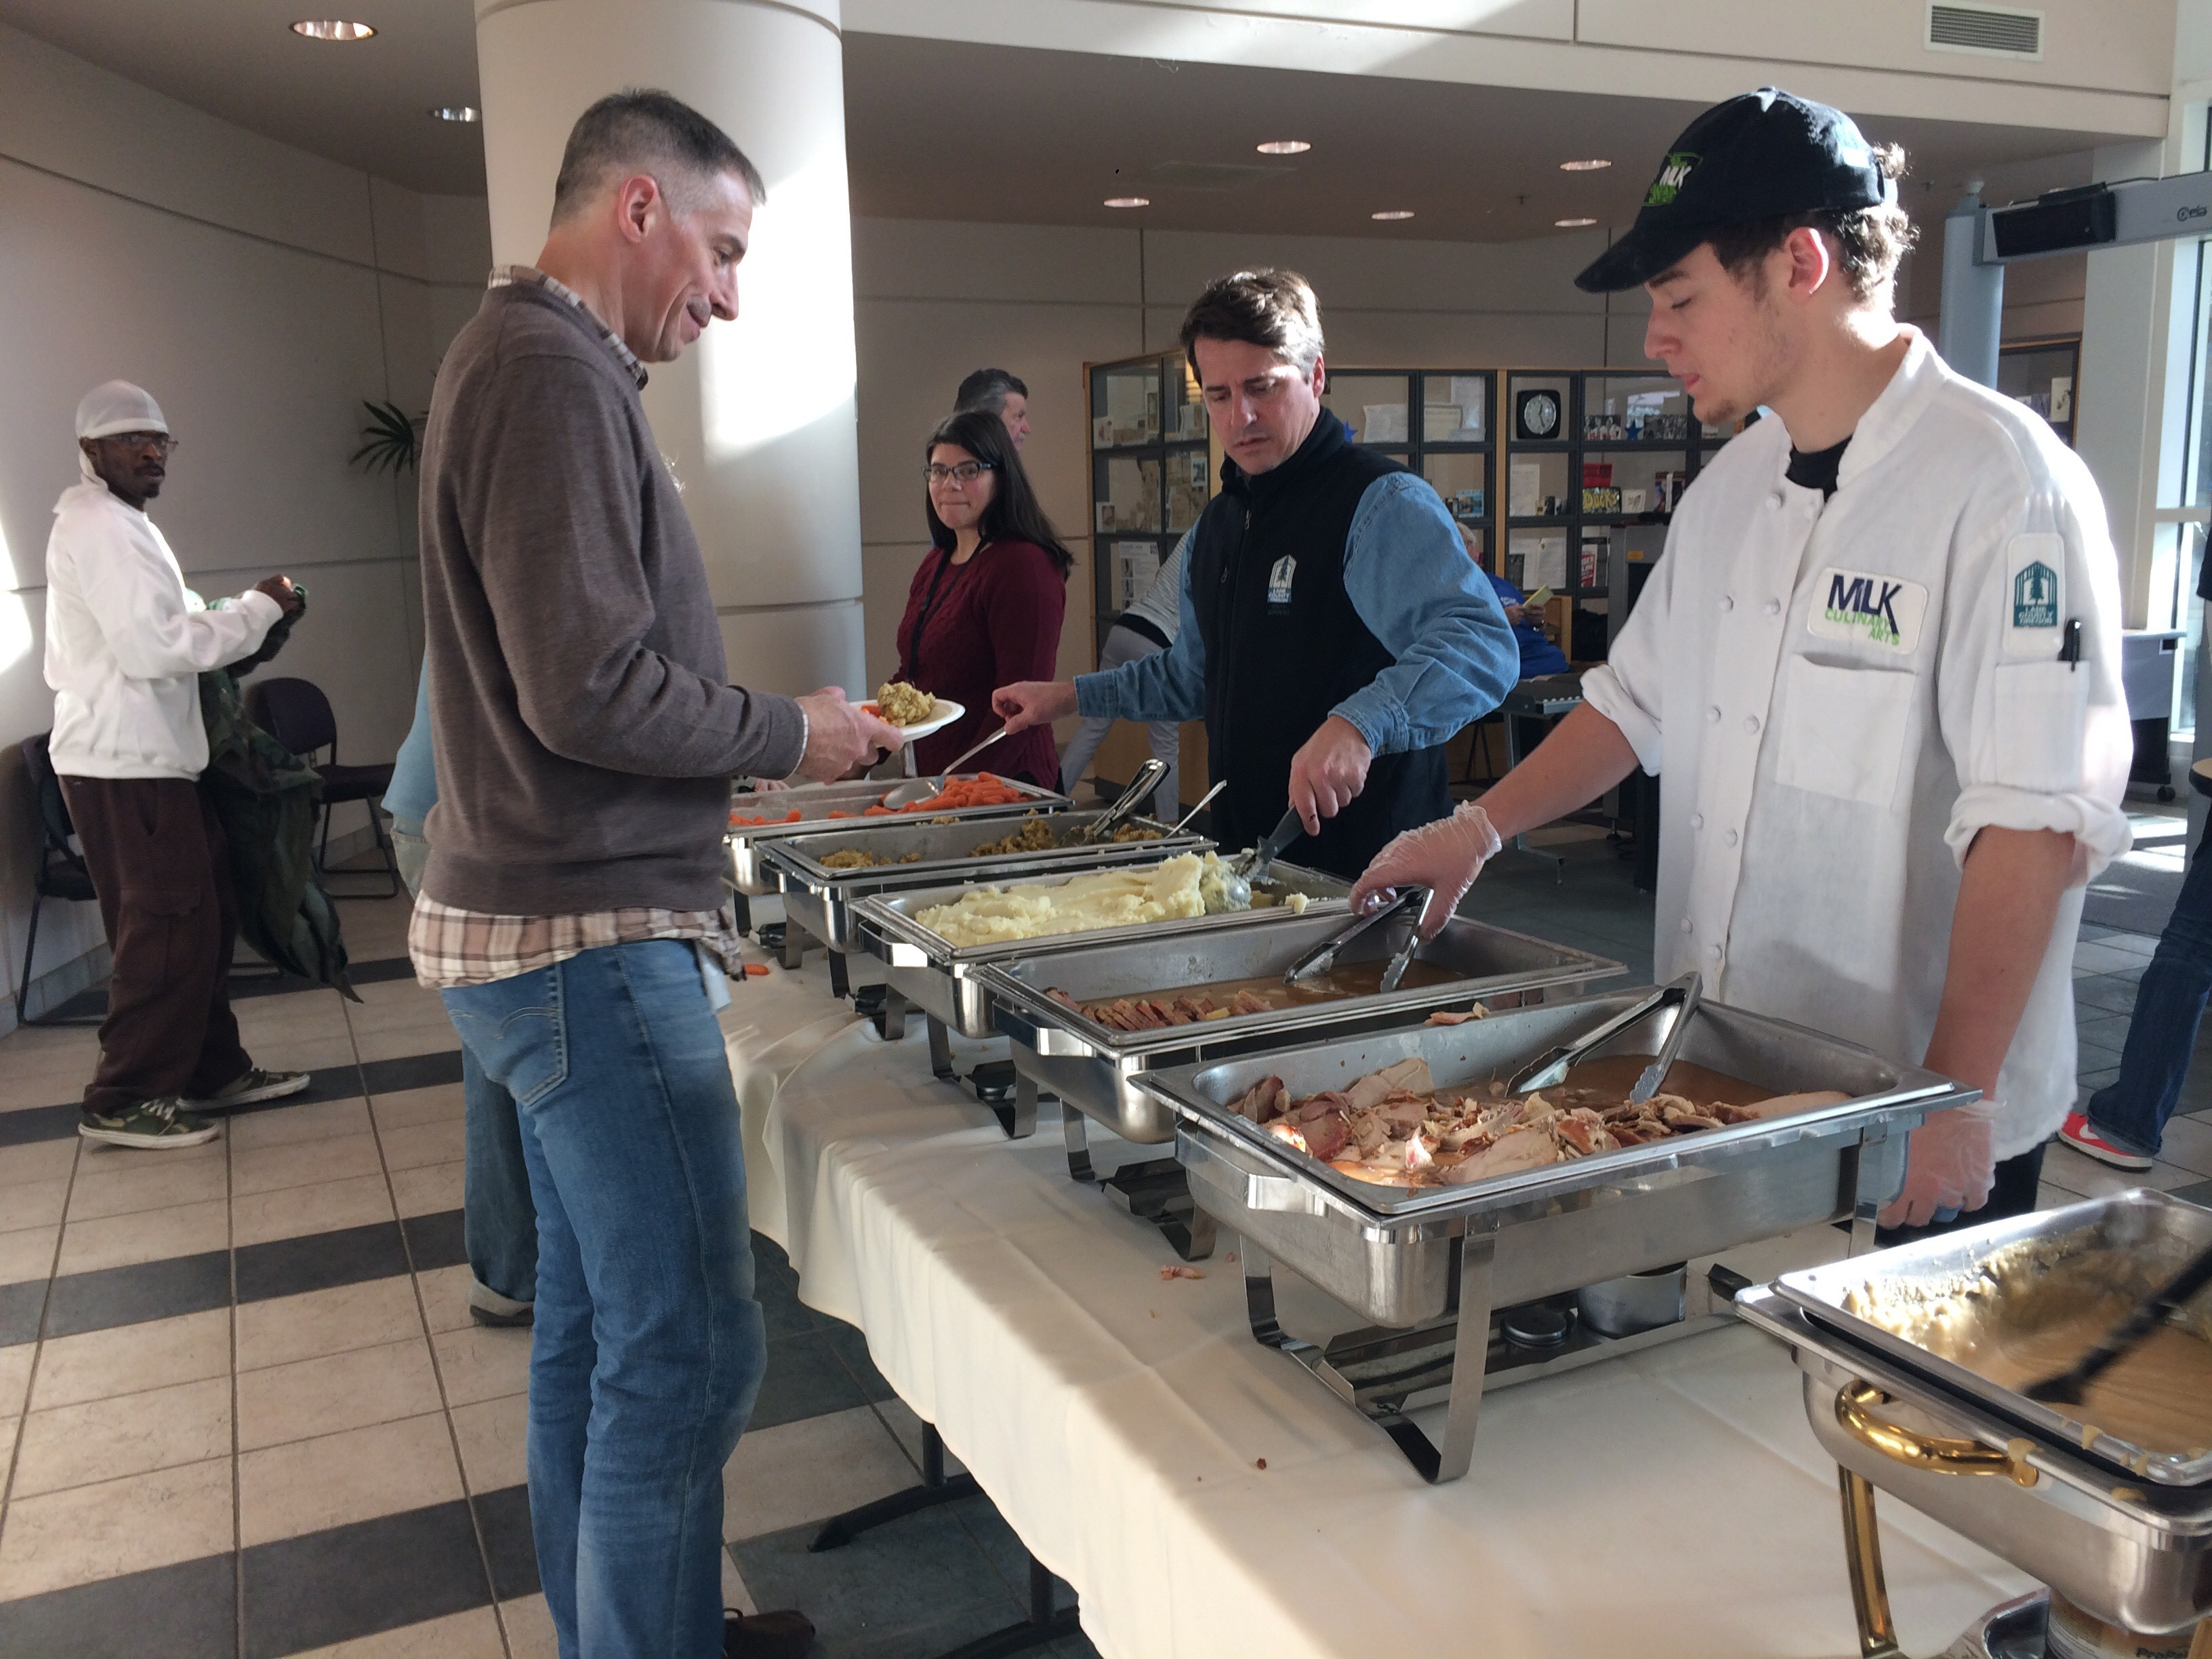 Teen gives free meals to community. (SBG Photo)